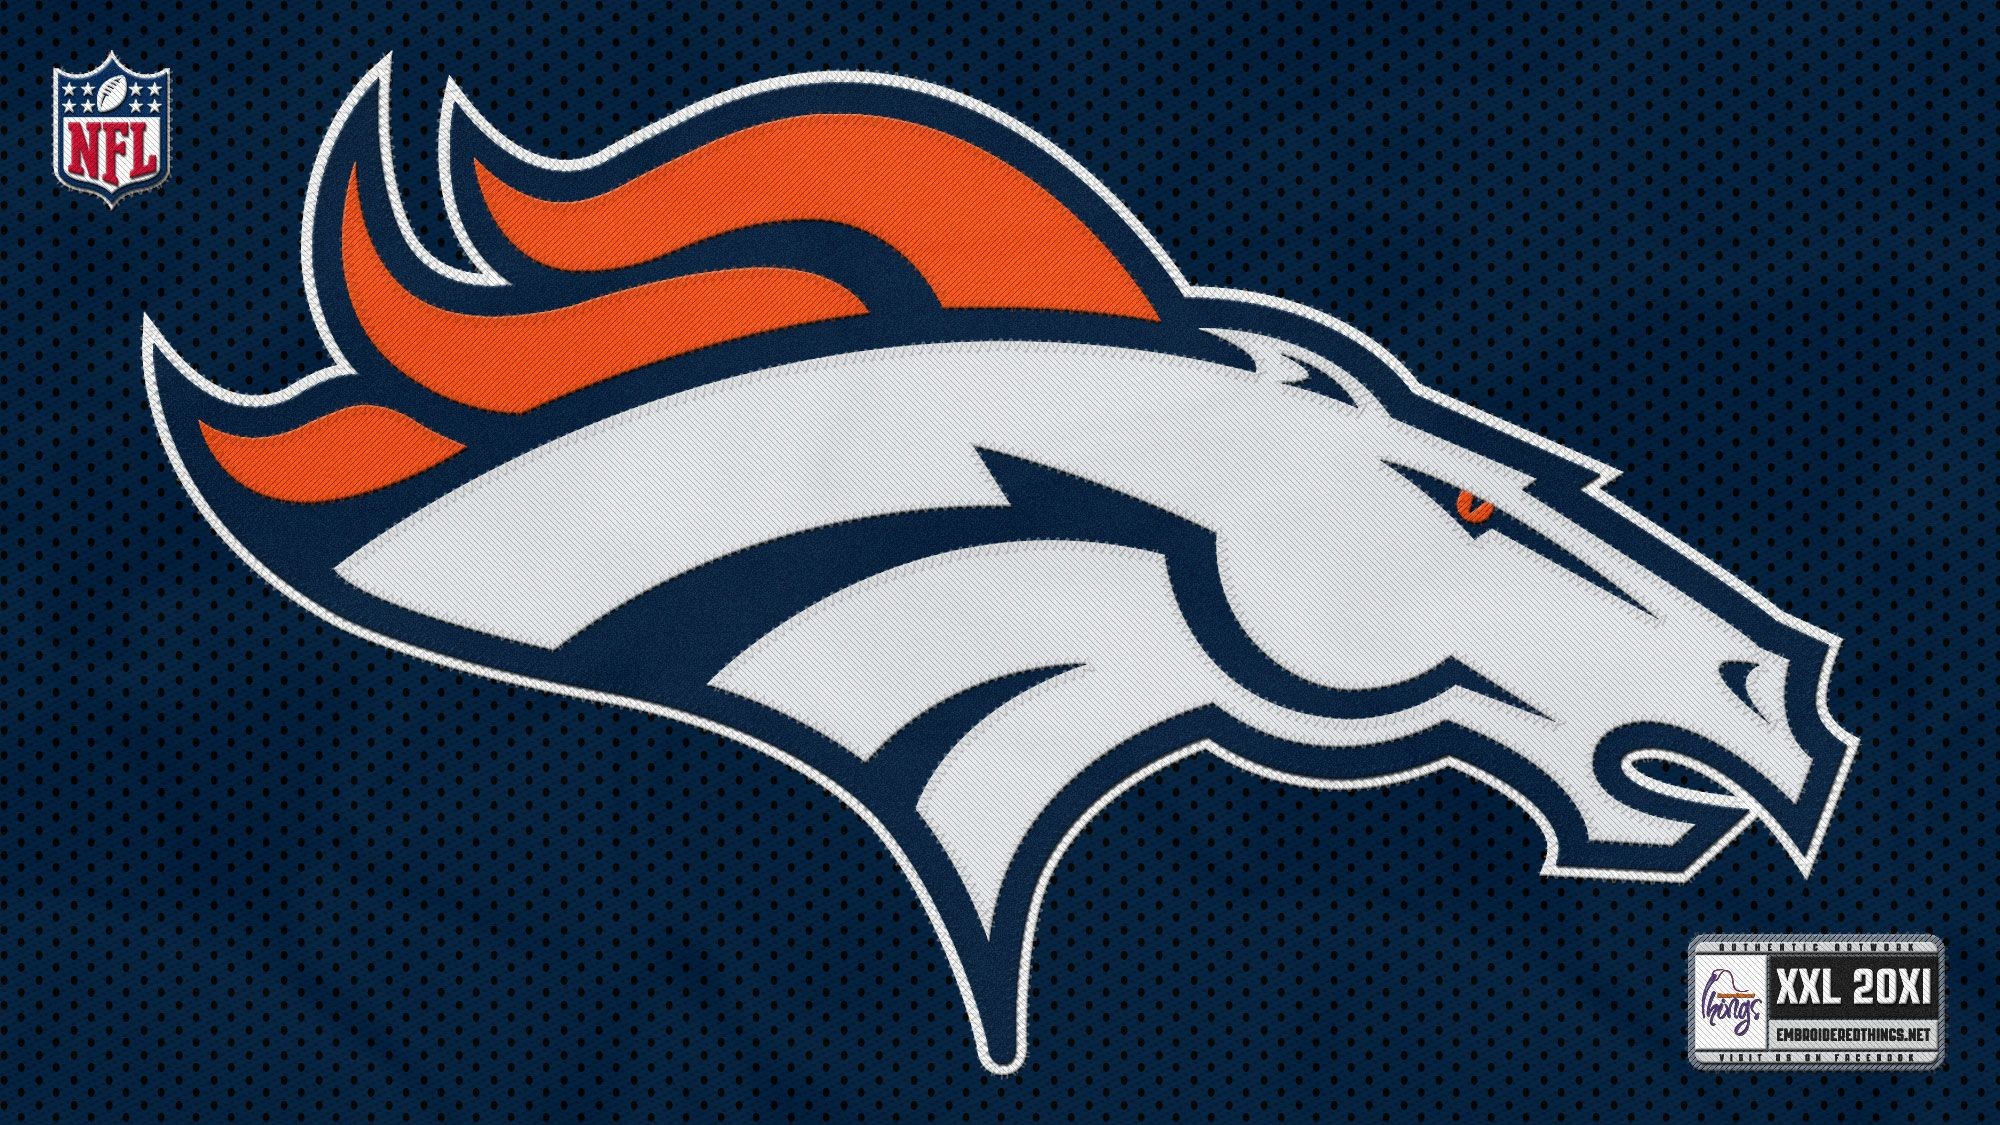 Denver Broncos Wallpaper Free